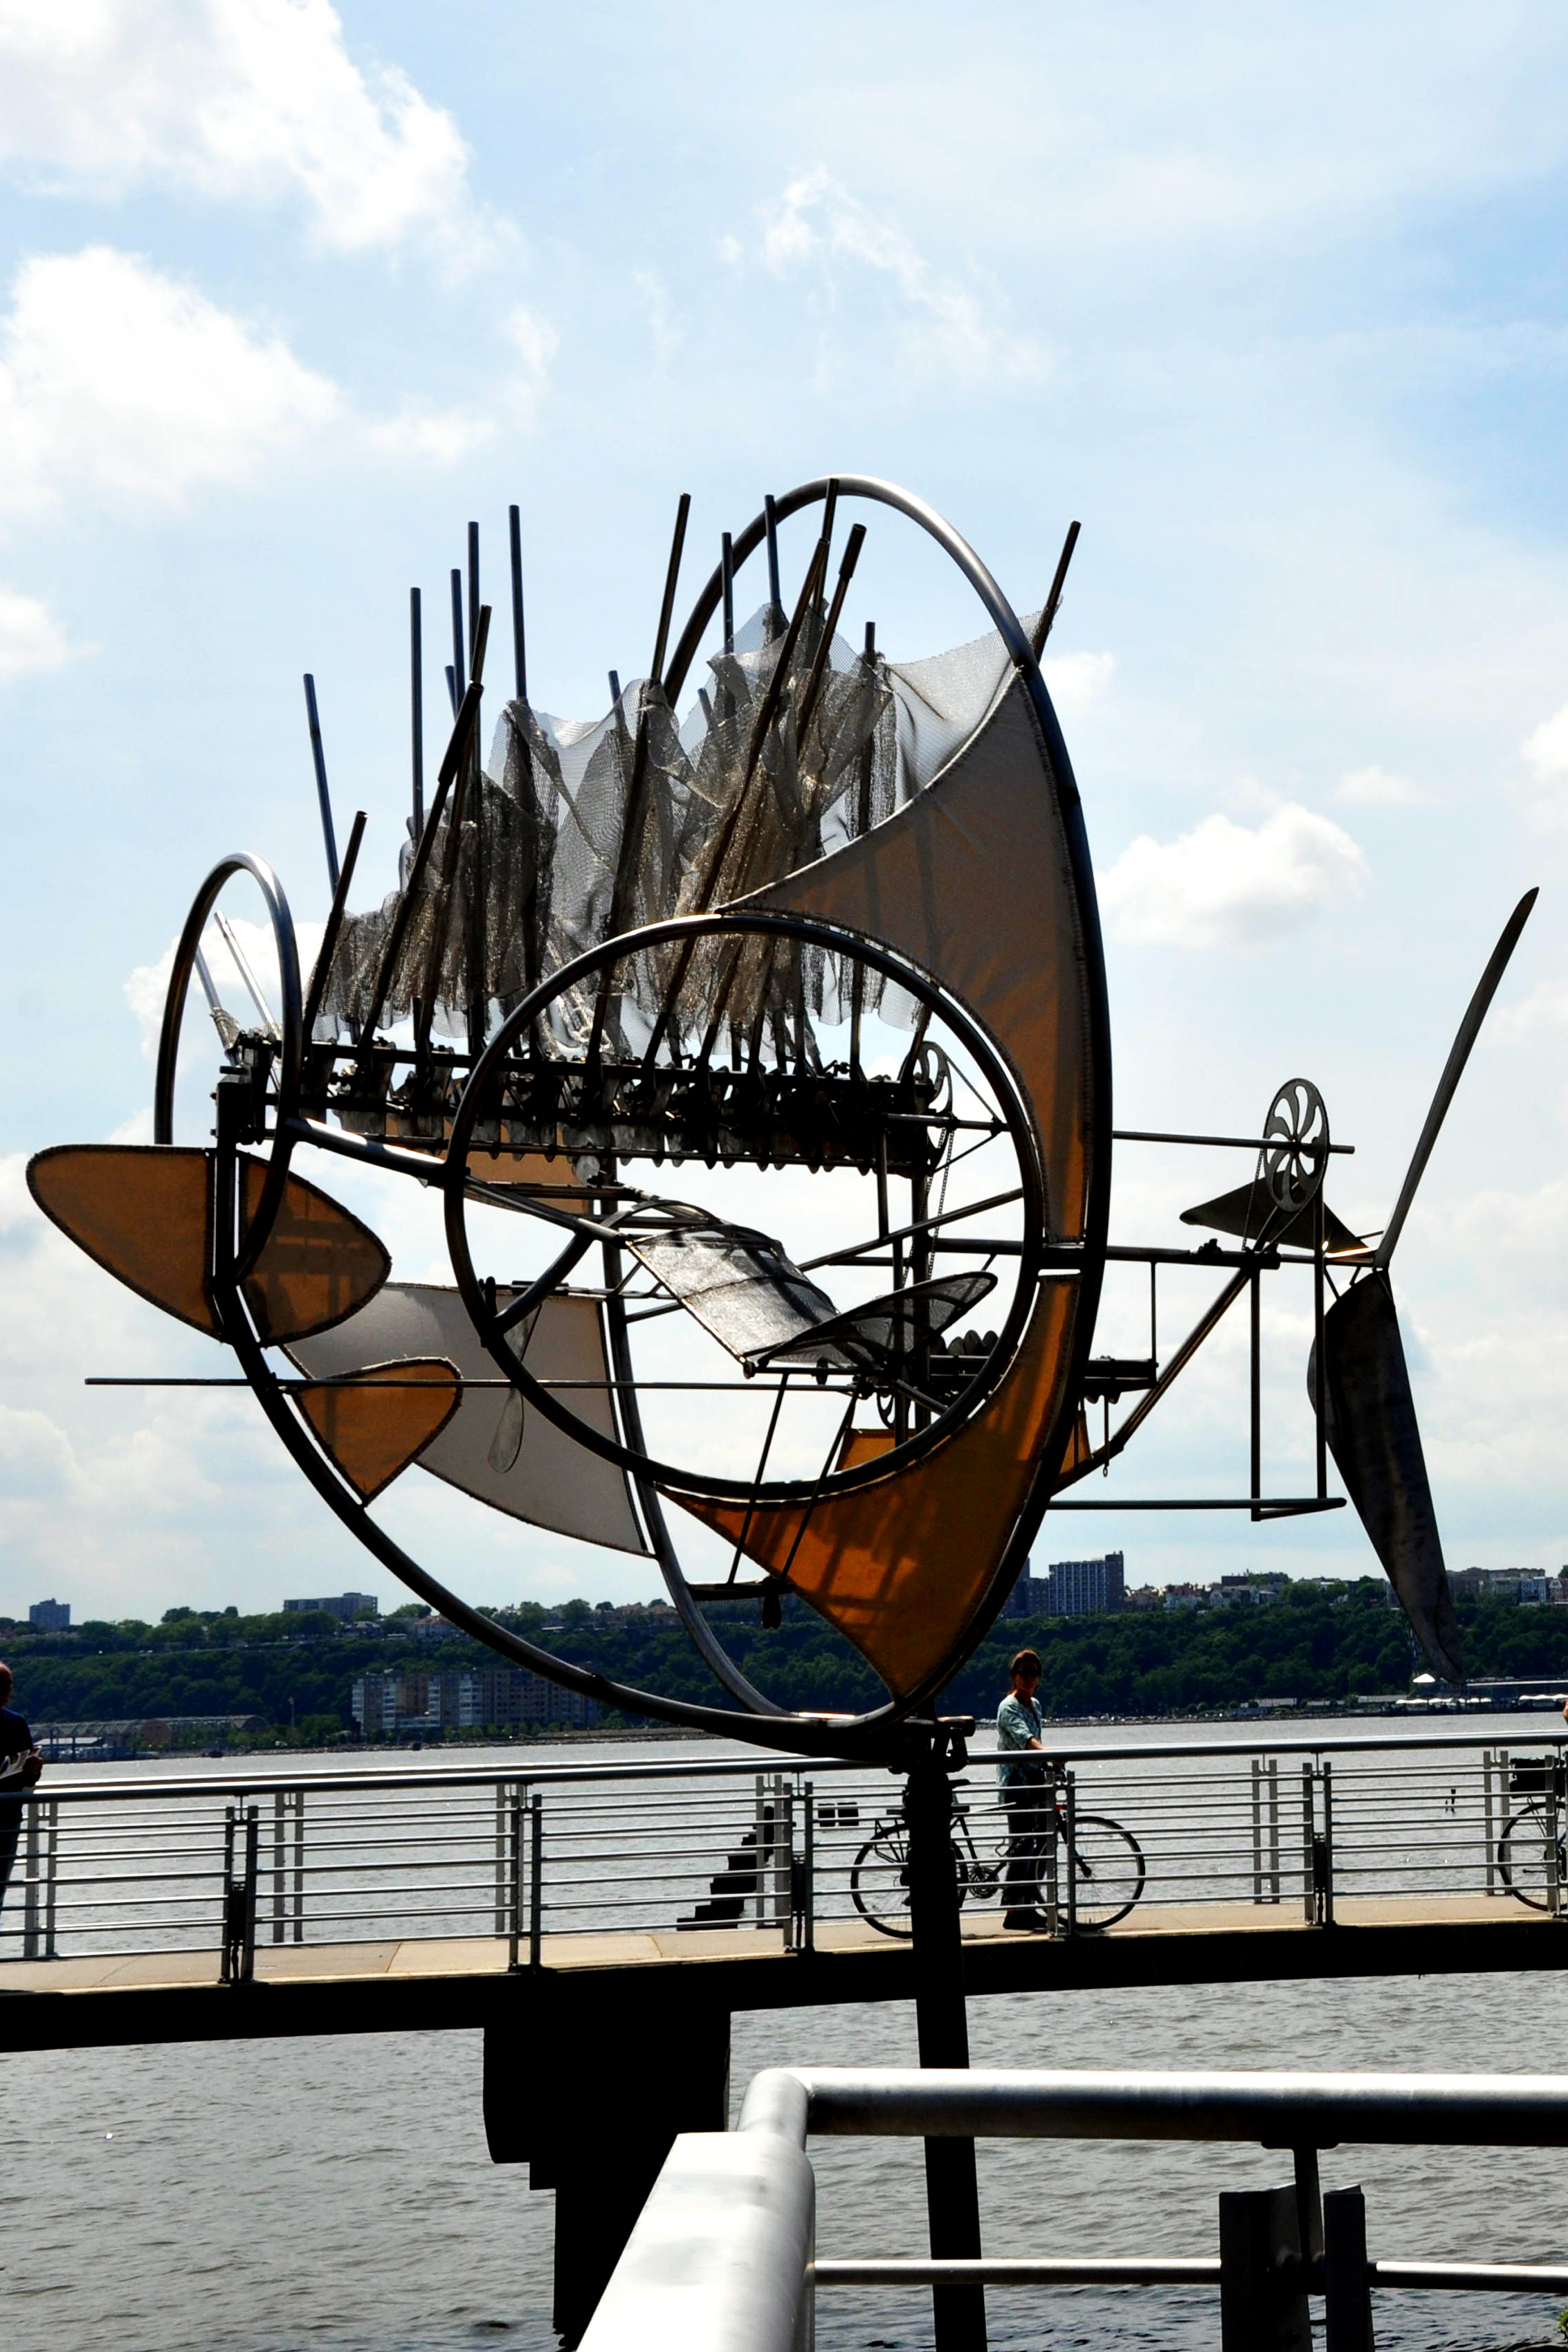 HakSul Wind Powered Sculpture